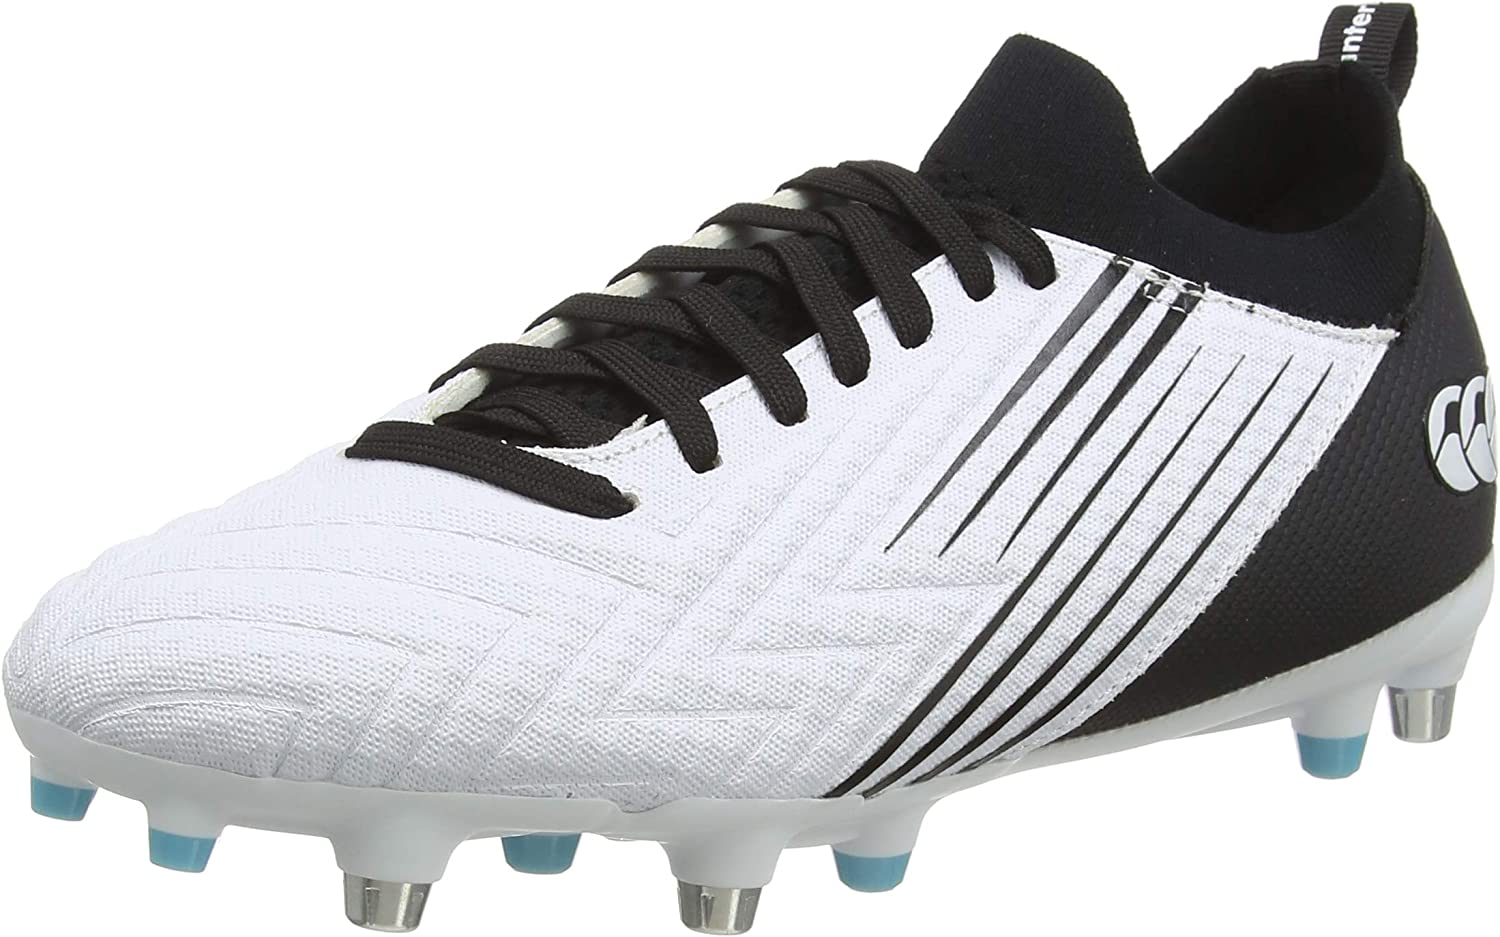 Canterbury Men's Speed 3.0 Pro Regular discount Soft Rugby Shoe Bla White OFFicial site Ground